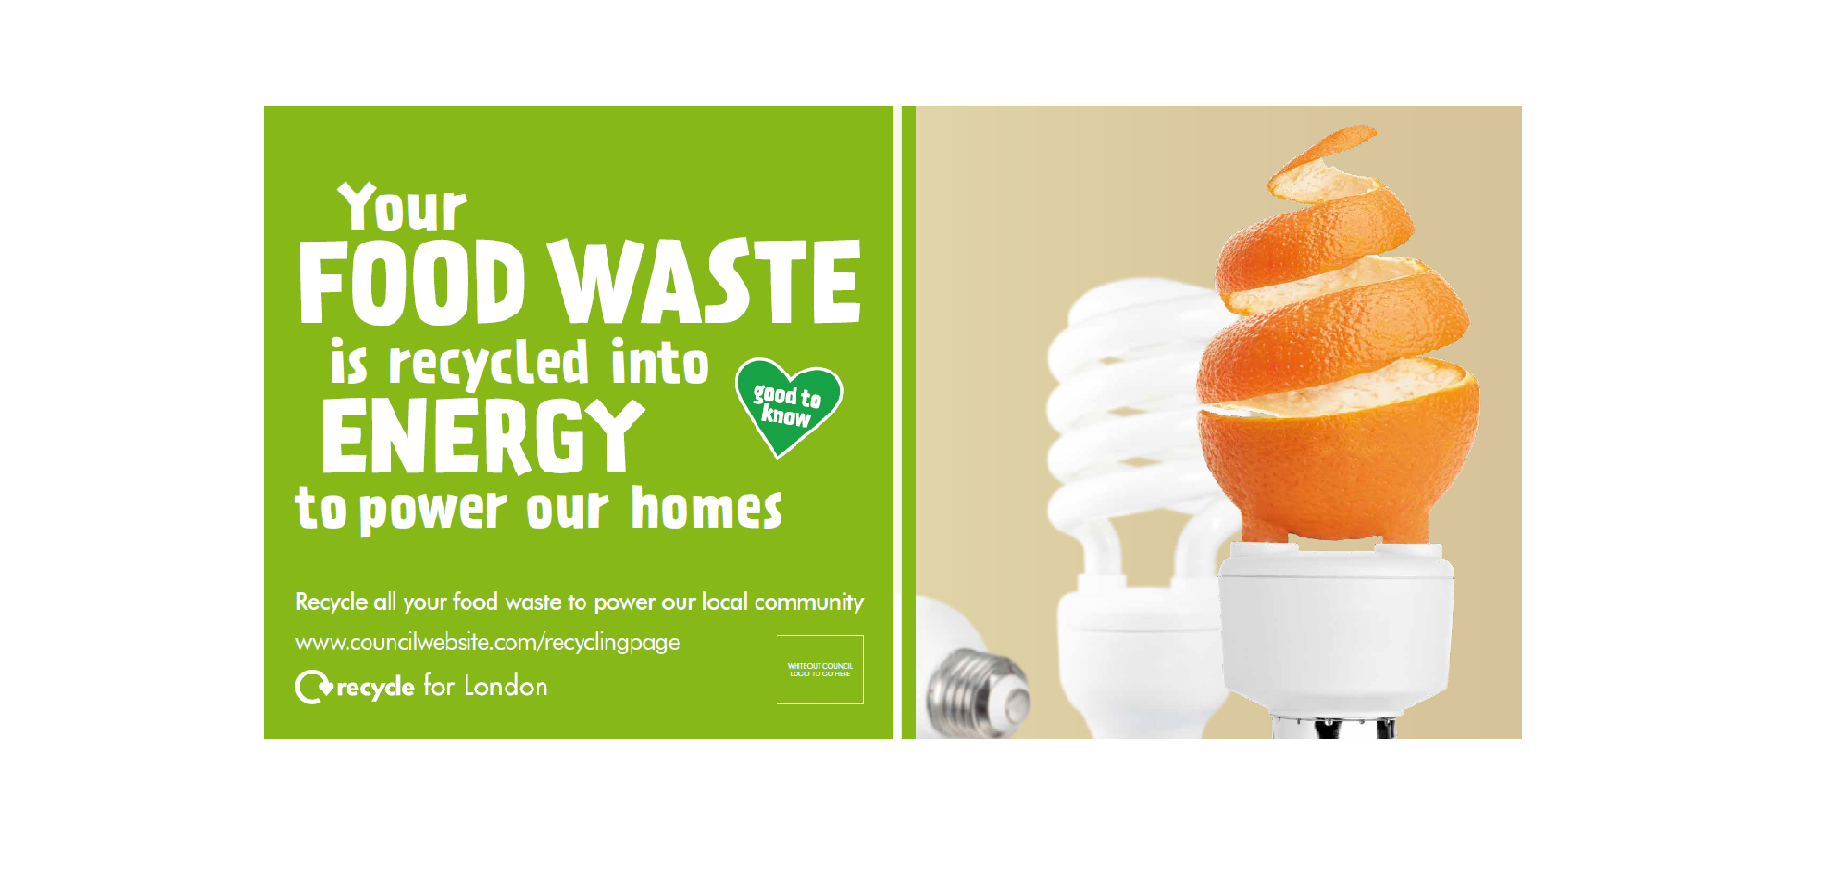 Food waste recycling featured image